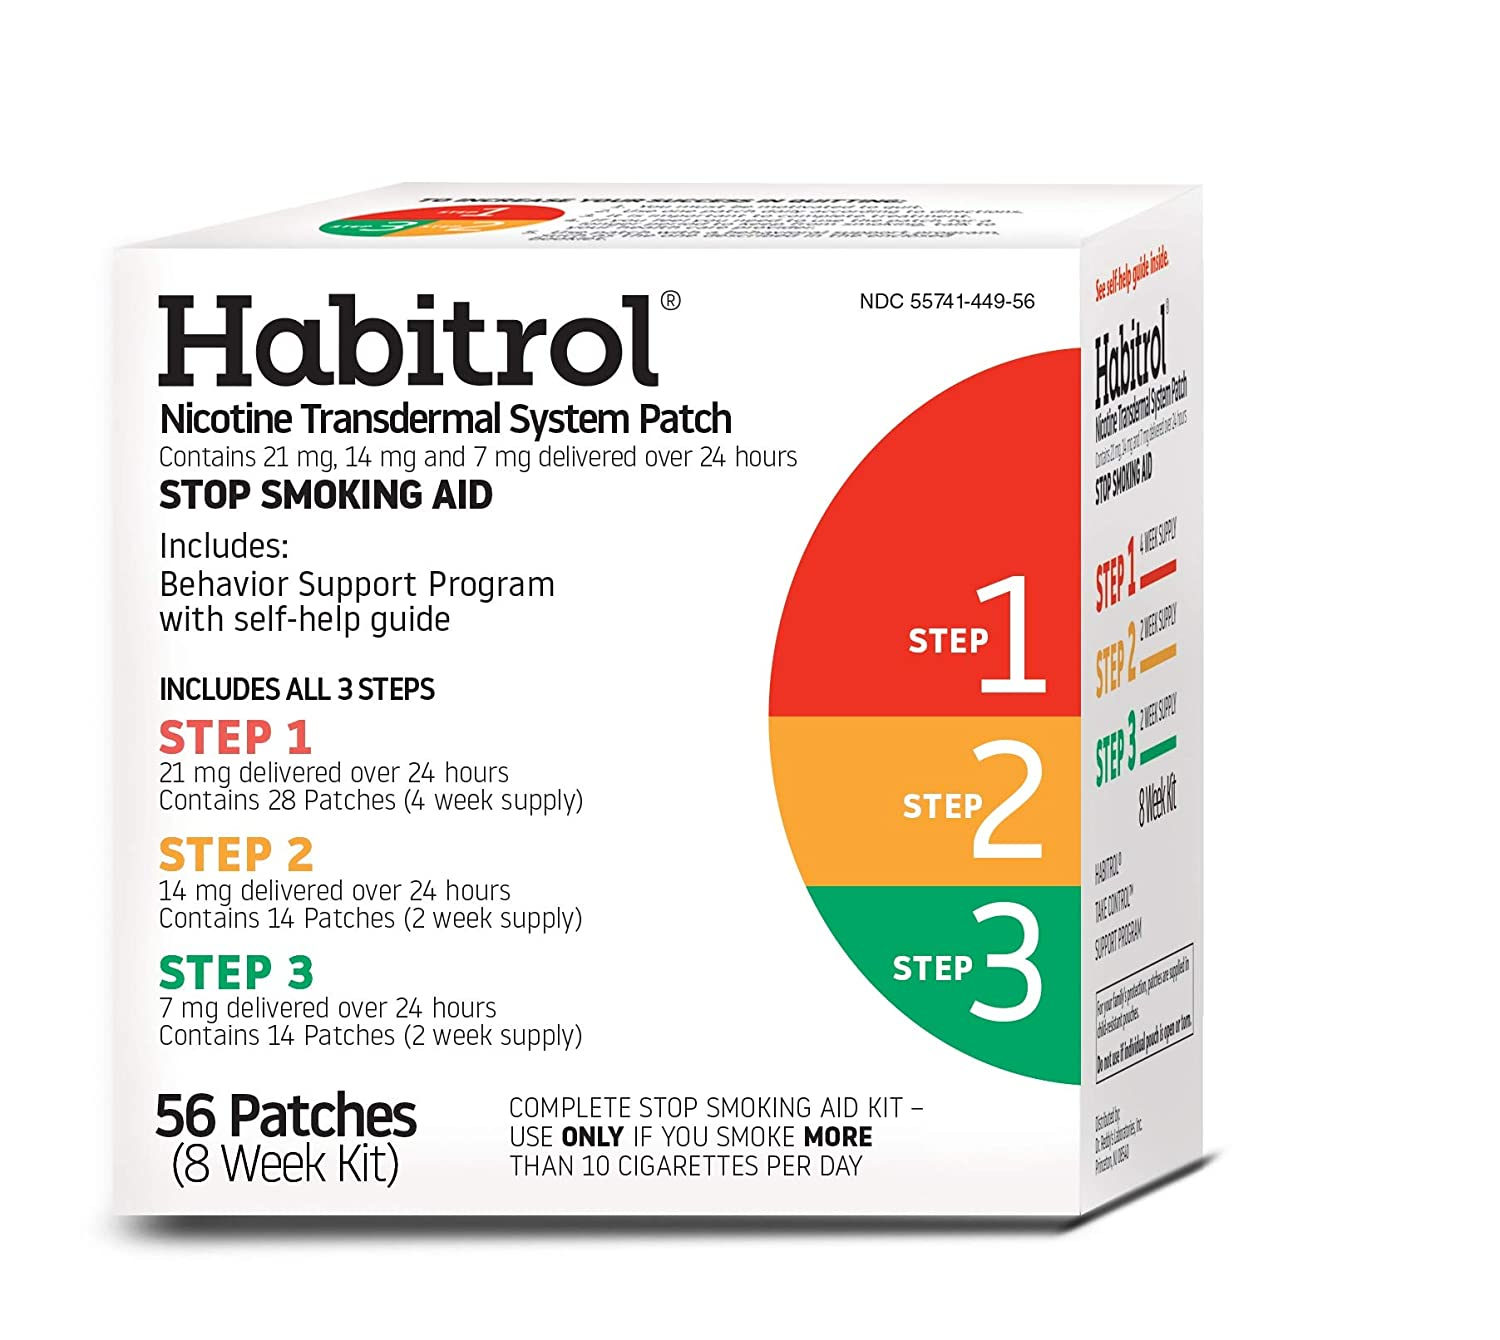 Amazon.com: Habitrol Nicotine Transdermal System Patch | Stop Smoking Aid |  Steps 1, 2, and 3 (21, 14, and 7 mg) | 56 Patches (8 Week Kit): Health ...